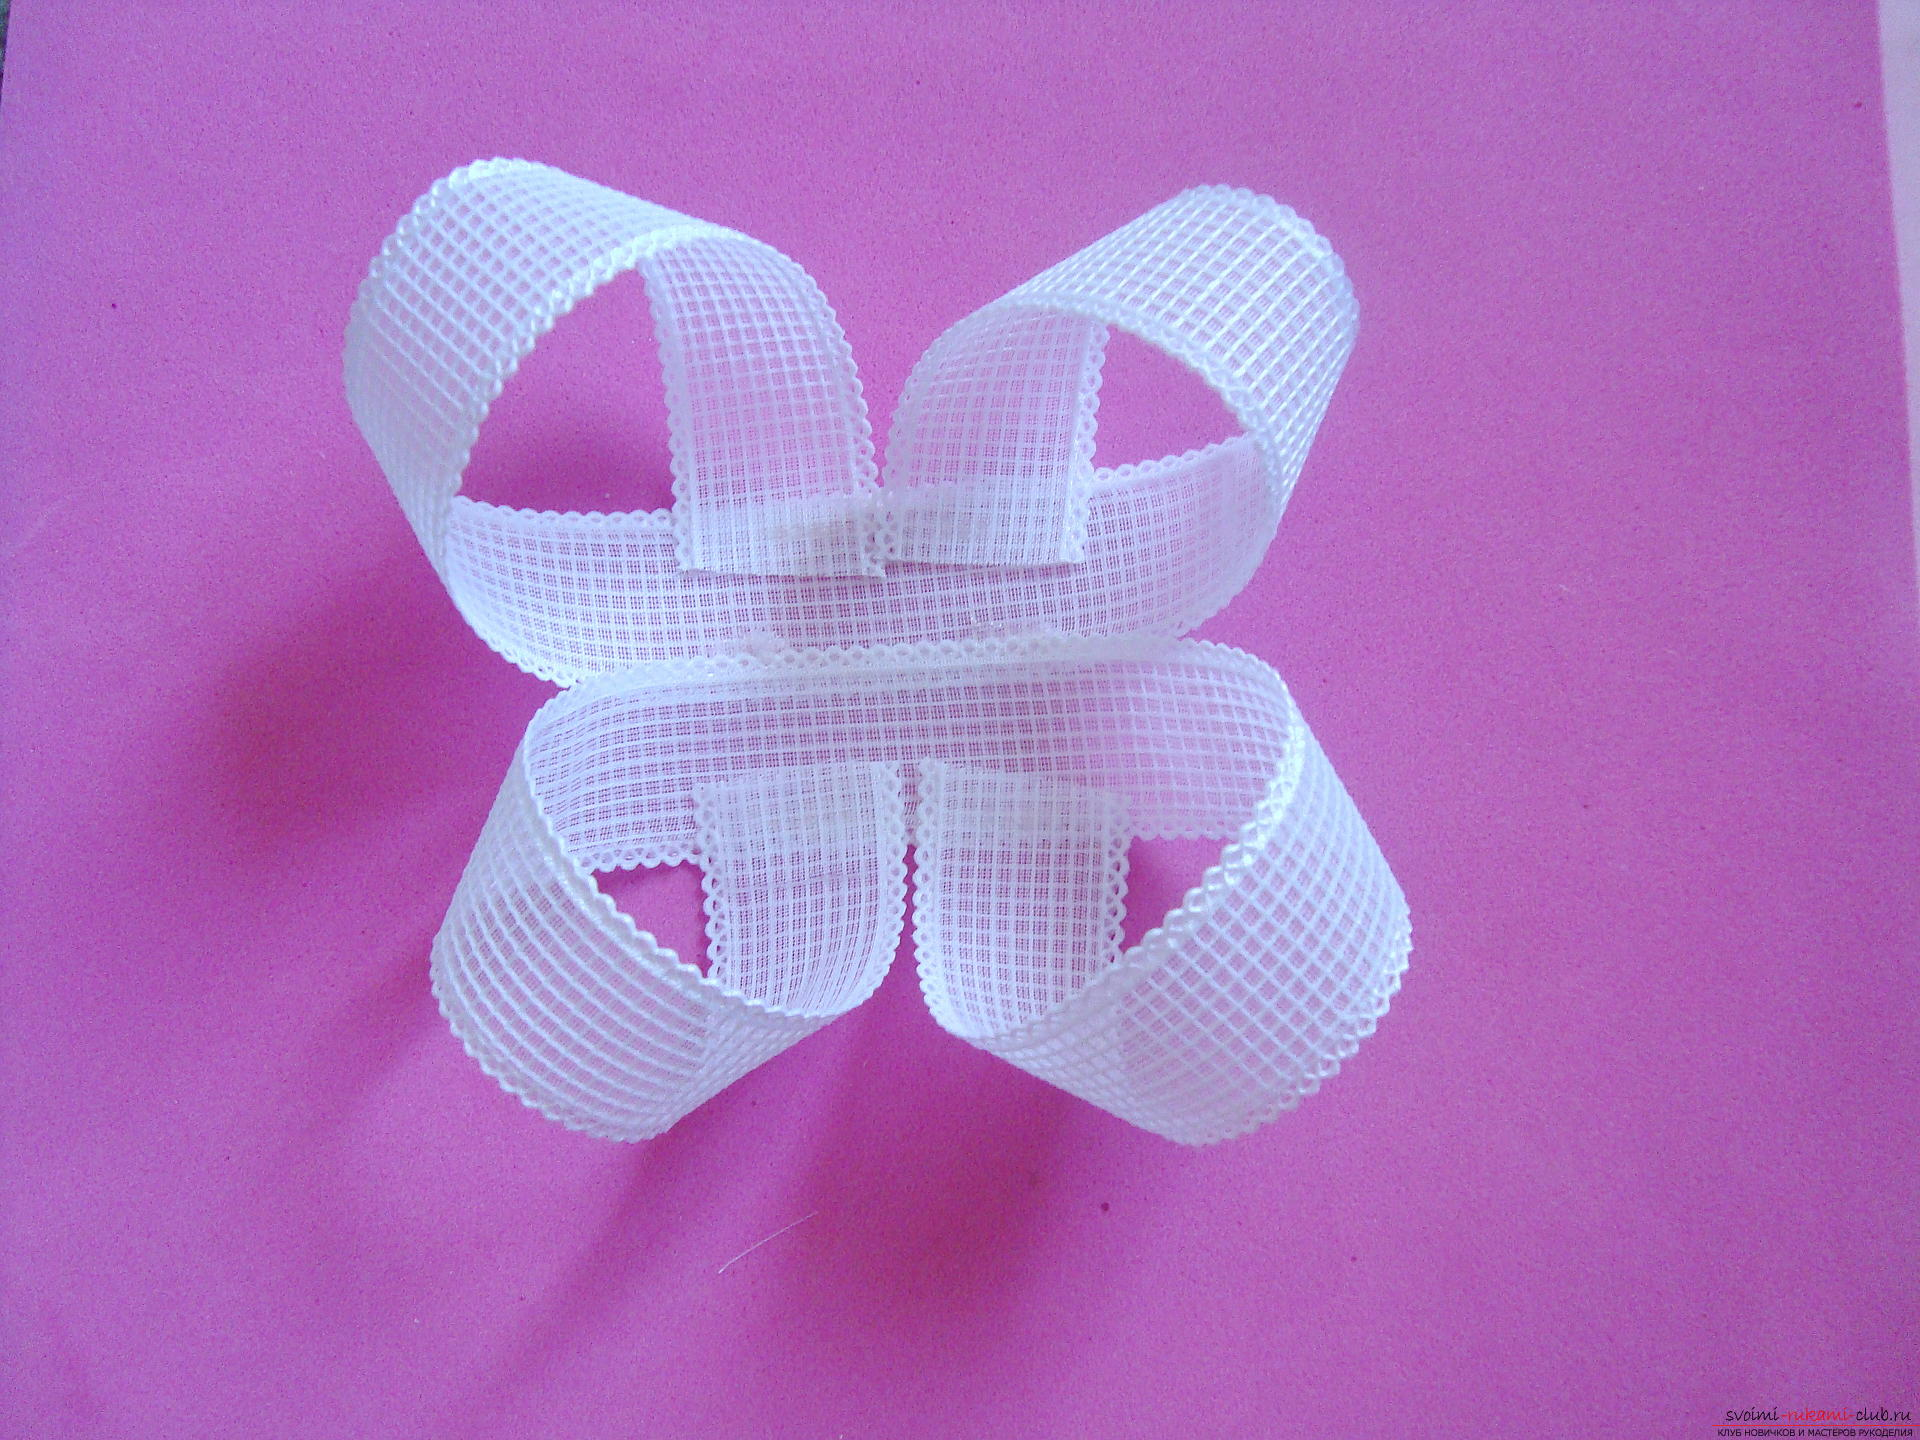 Step-by-step guide to making bows by September 1 for schoolgirls describing the steps and photos. Photo №8